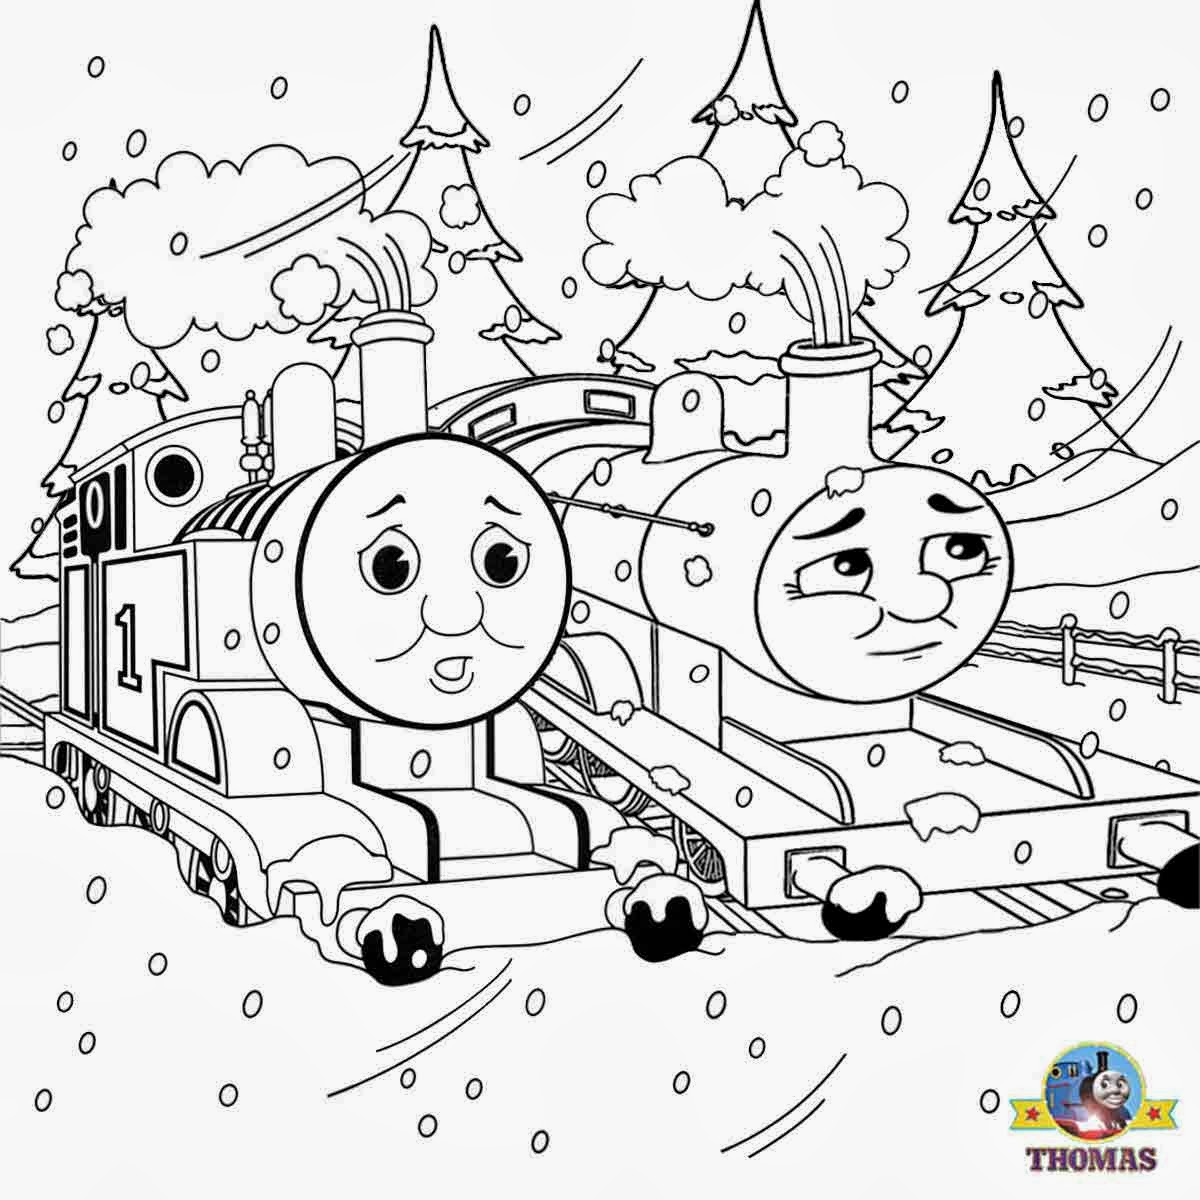 Mr Snowman On Christmas Touching A Snowflake Coloring Page: Train Thomas The Tank Engine Friends Free